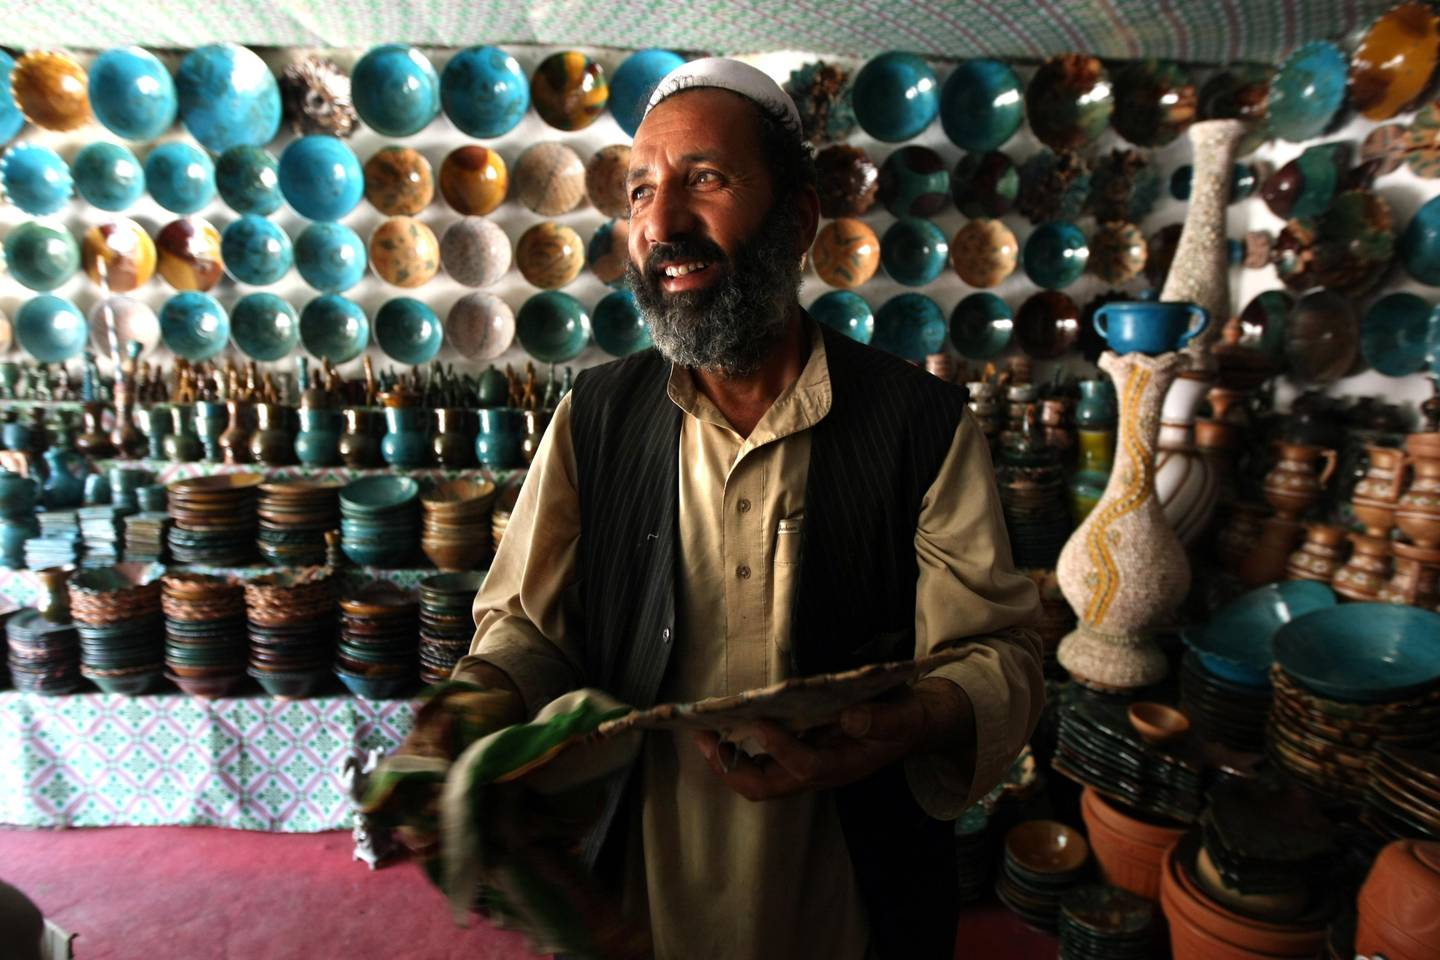 June 6, 2008 / Istalif /  Malik Mohammad owns this pottery shop in Istalif Afghanistan. During the Telaban's rule pottery shops in Istalif where destroyed, but with the help of the Turquoise Mountain Foundation the shops have returned June 6, 2008. (Sammy Dallal / The National) *** Local Caption ***  sd-afghanday4-3.jpg sd-afghanday4-3.jpgrv20afghanarts8.jpg